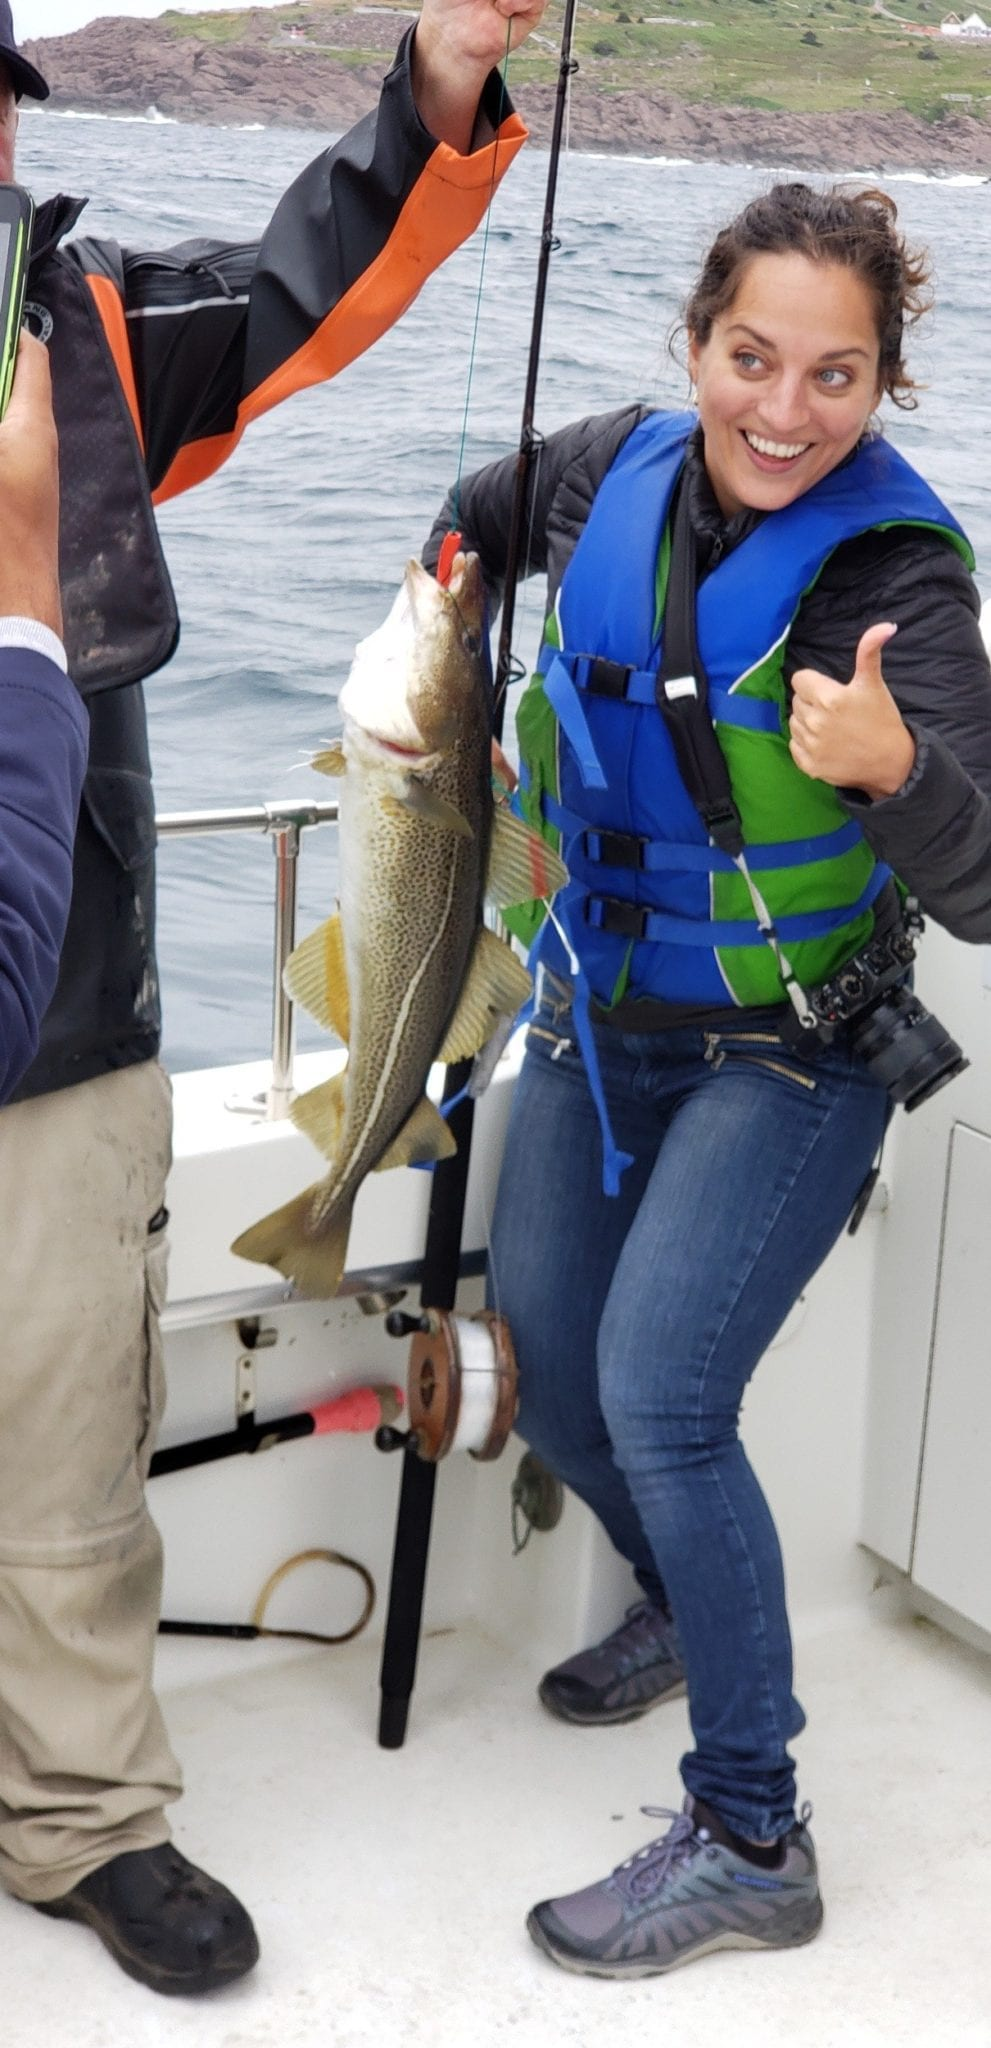 Kate holds up a fish roughly from her chest to her knees and gives a thumbs up.